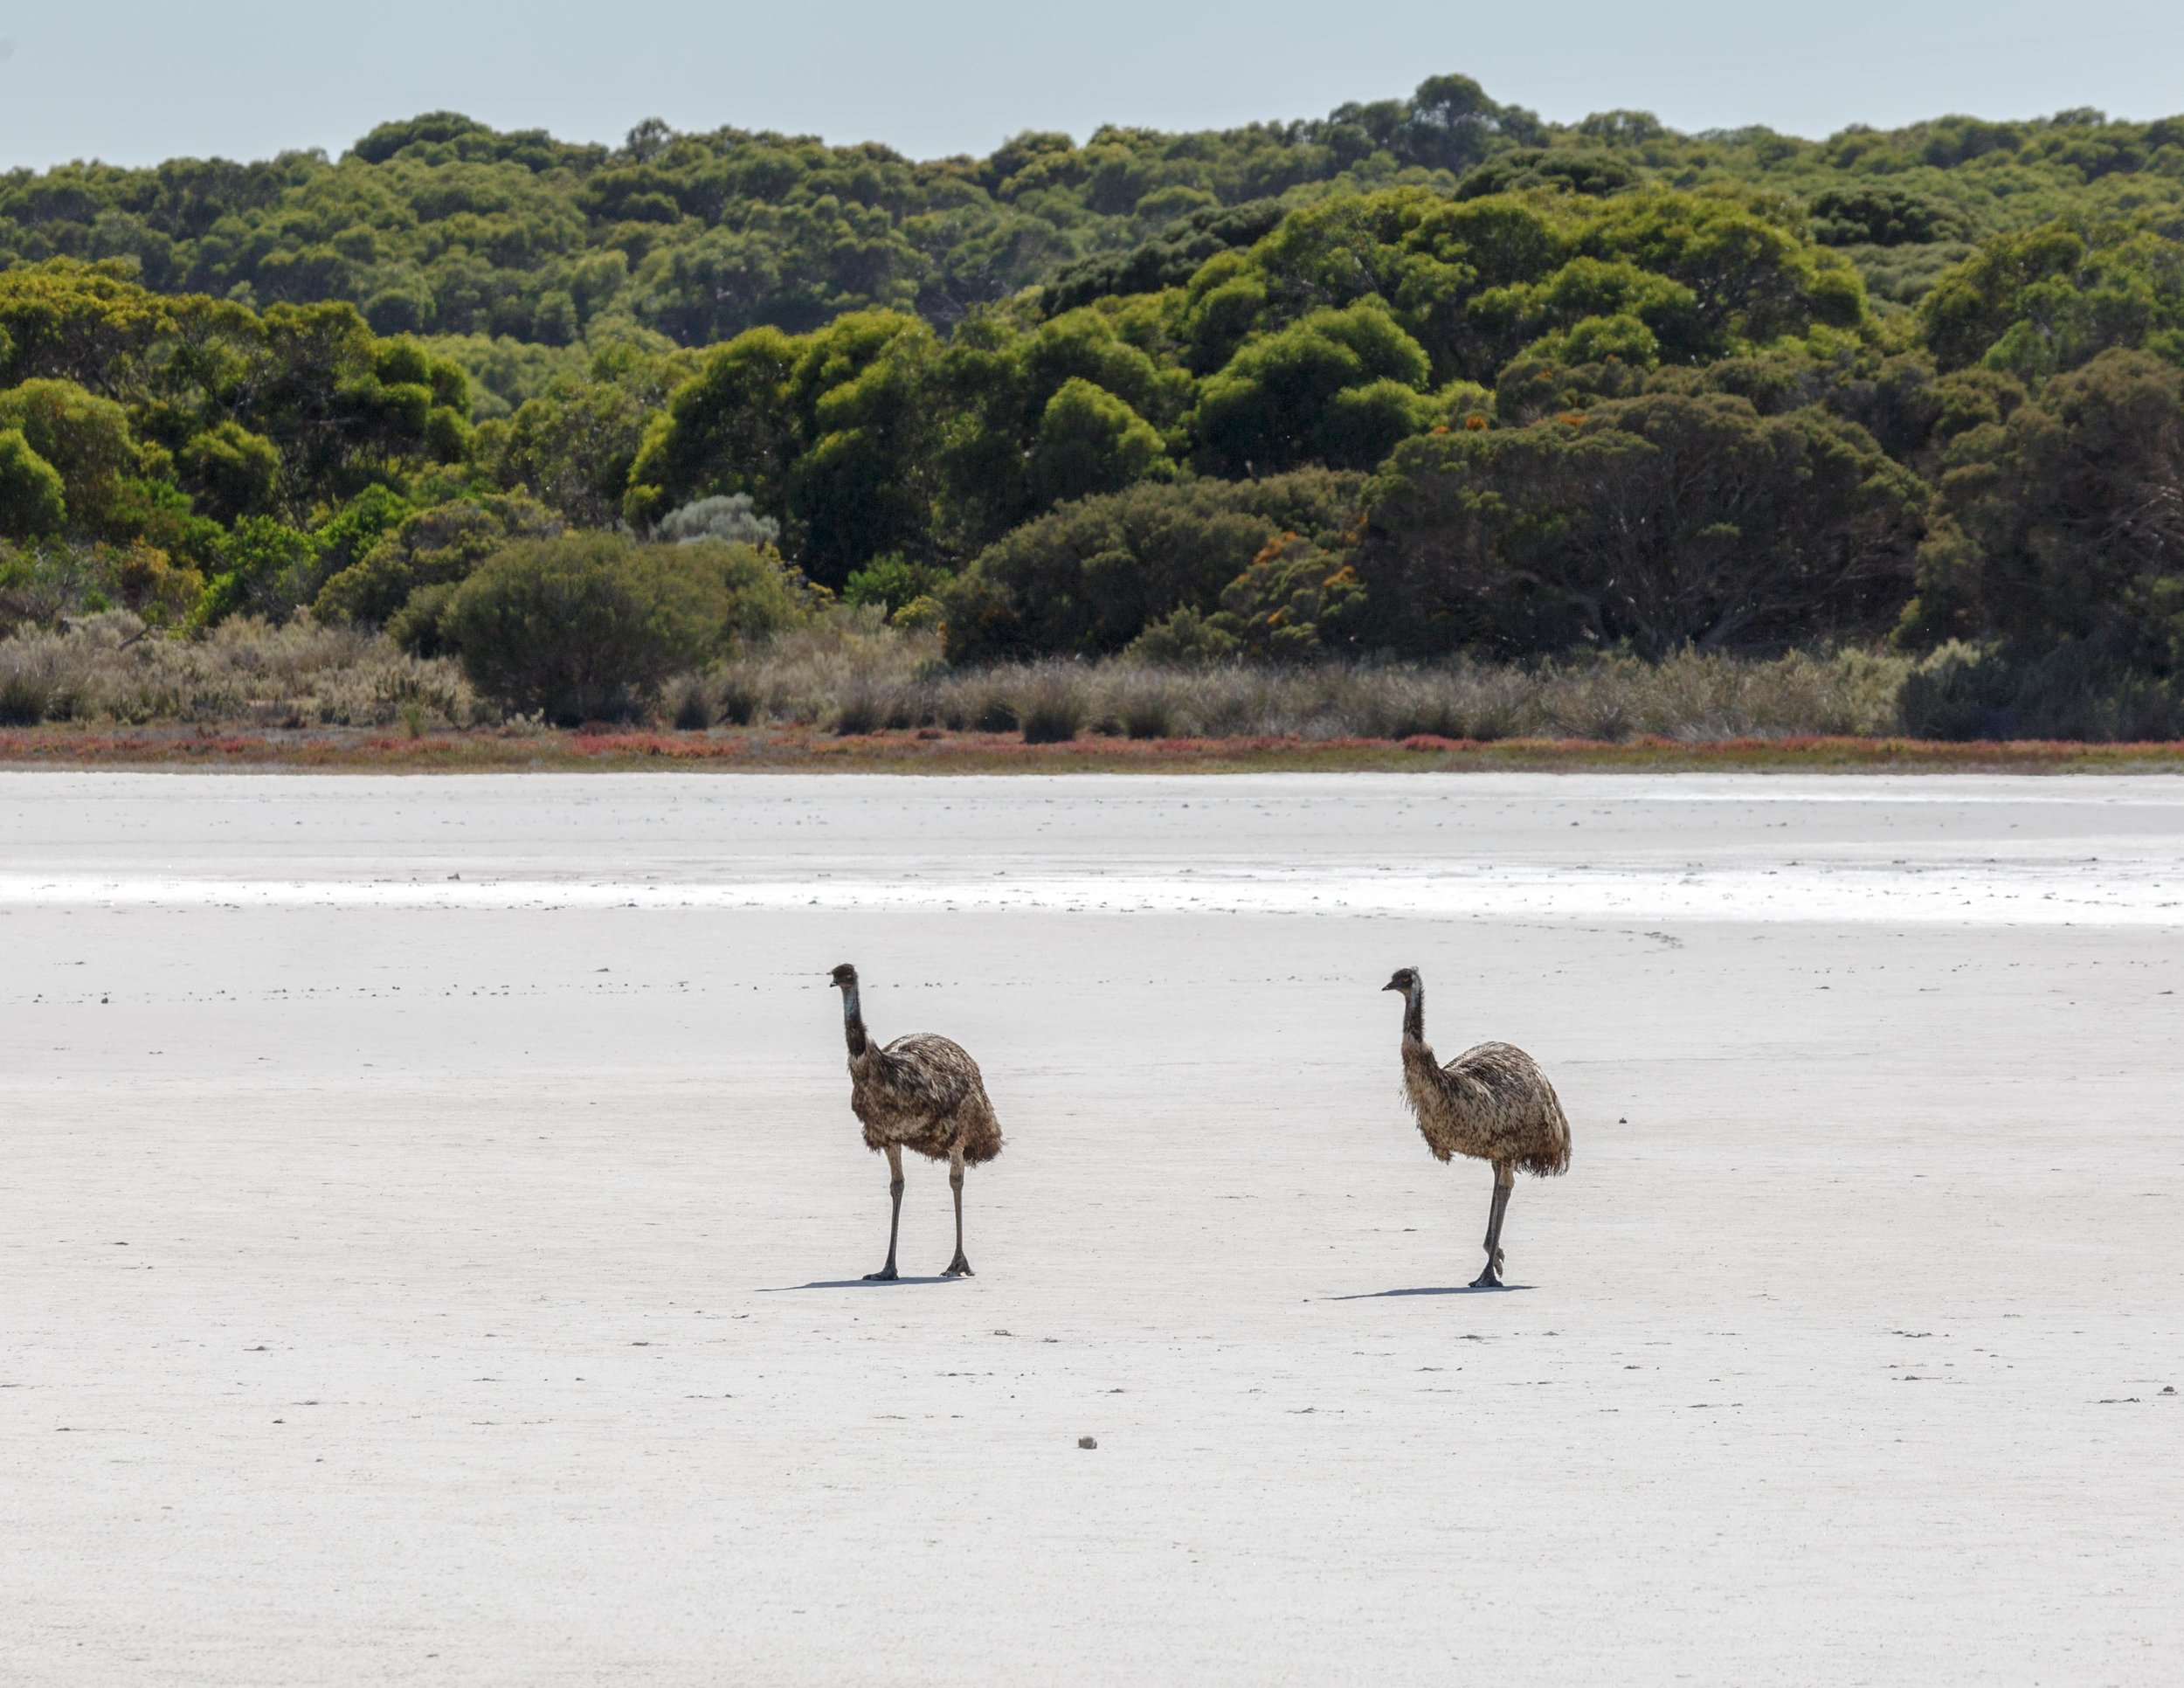 Emus in Coorong